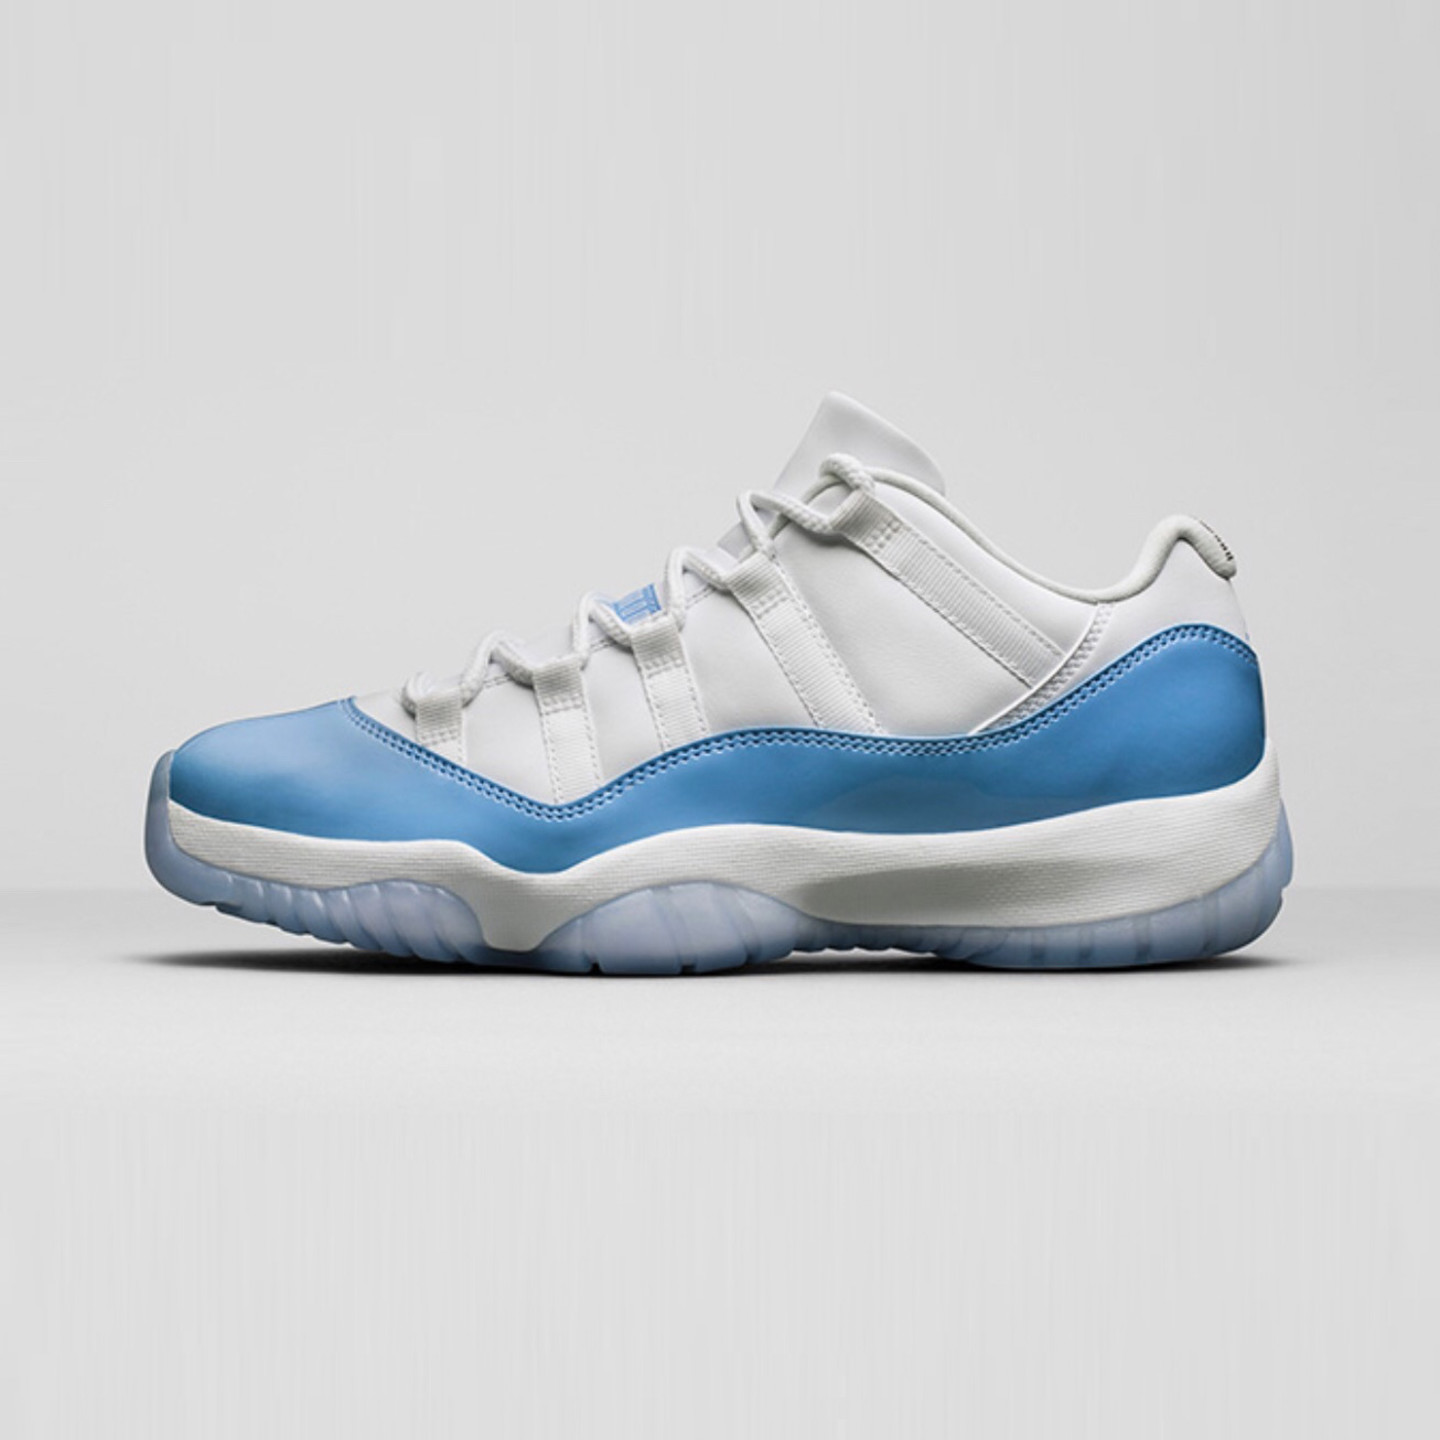 Jordan Air Jordan 11 Retro Low 'UNC' White / University Blue 528895-106-45.5